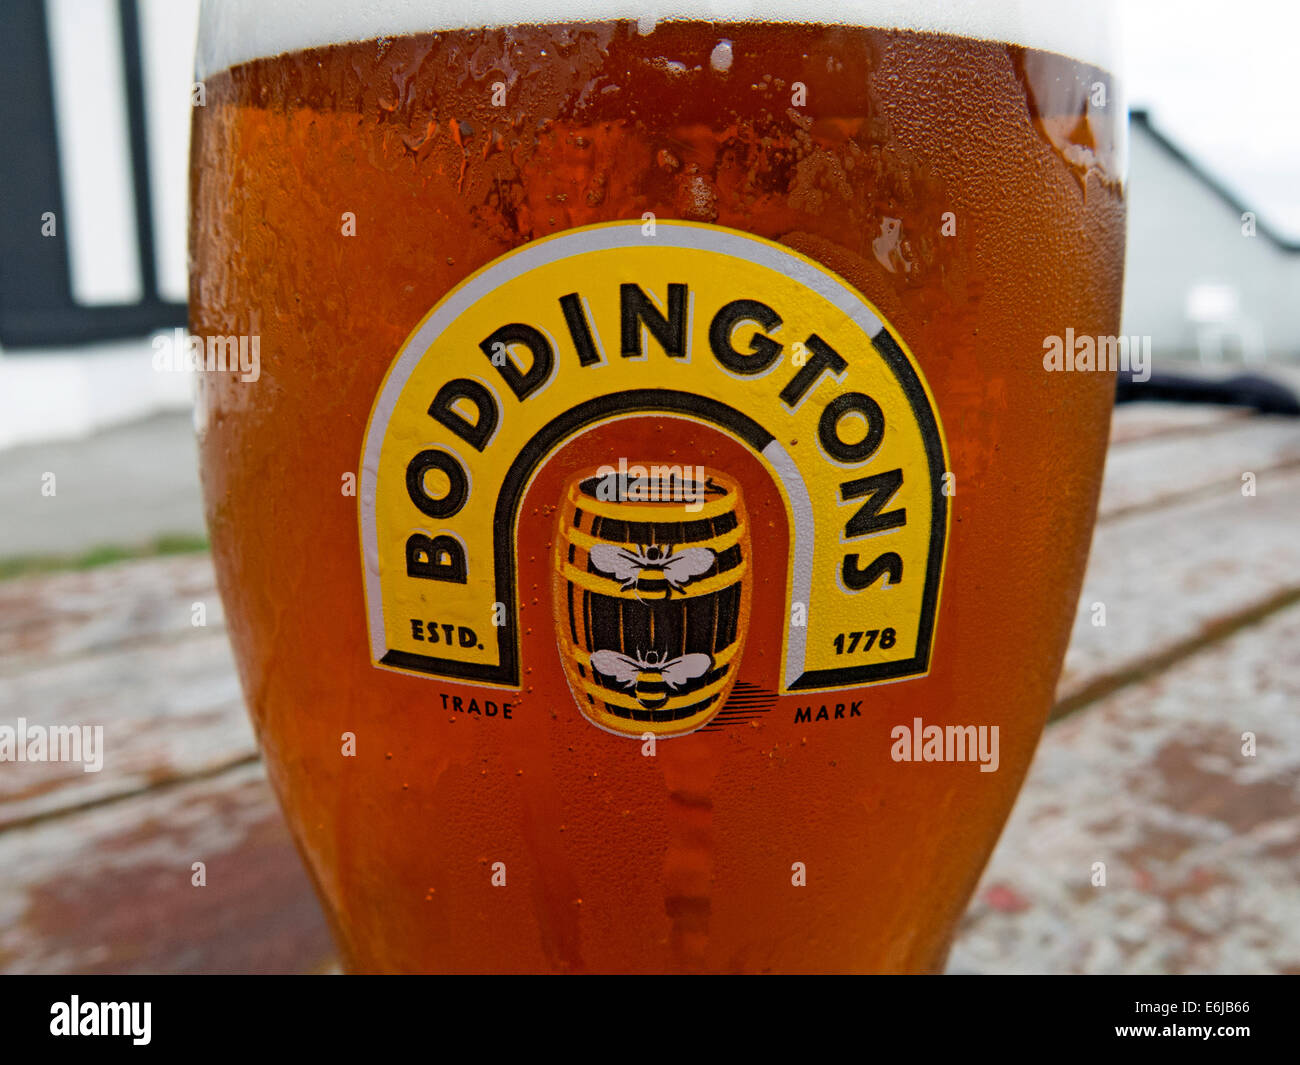 with,a,head,withahead,beer,Boddington,regional,ale,brewed,in,Mossside,pint,glass,boddies,hoppy,widget,draught-style,draught,style,cream,brewing,co,company,Strangeways,whitbread,Anheuser–Busch,InBev,outside,on,a,bench,table,wood,wooden,cask,conditioned,Pub,barrel,regional,national,Madchester,Gotonysmith,the,of,creamOfManchester,bee,bees,logo,city,product,NW,England,UK,GB,Great,britain,Anheuser,Busch,Hydes,Brewery,in,Moss,Side,Kestrel,kegging,facility,prison,HMP,demolished,blandly,foamy,nitrokeg,travesty,of,the,original,version,Mancester,Buy Pictures of,Buy Images Of